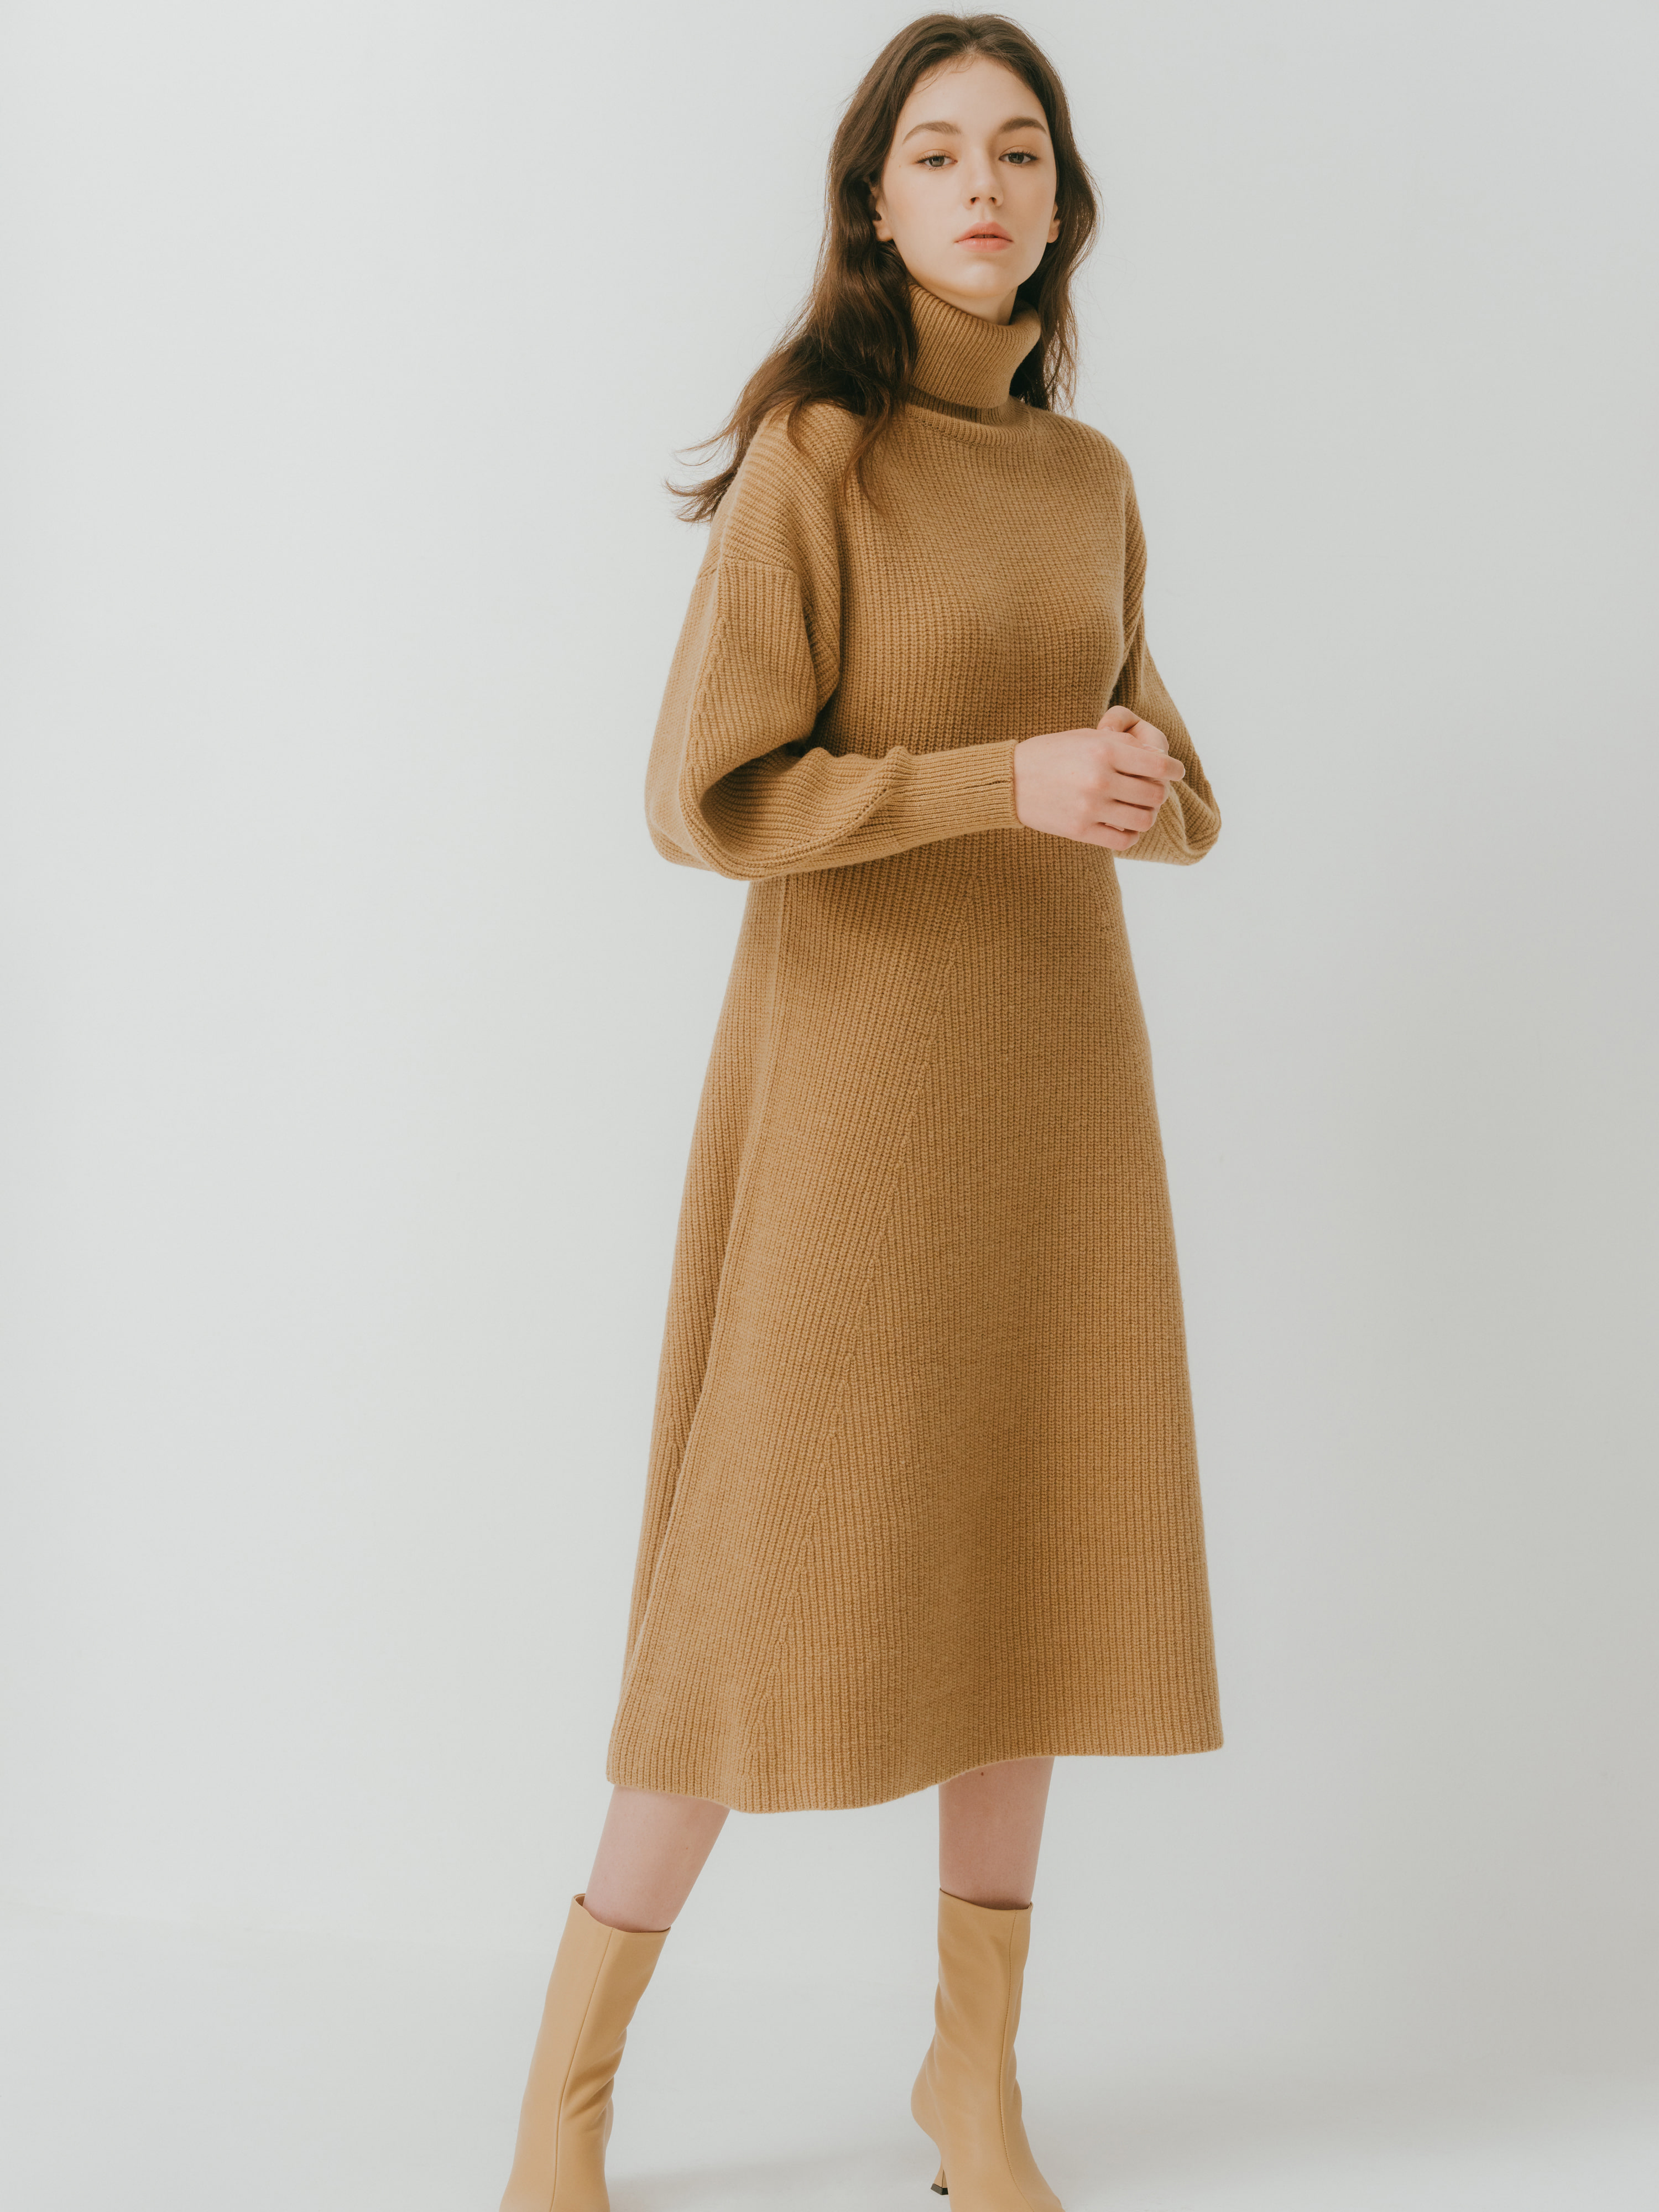 Ribre dress(Camel) 2차 입고